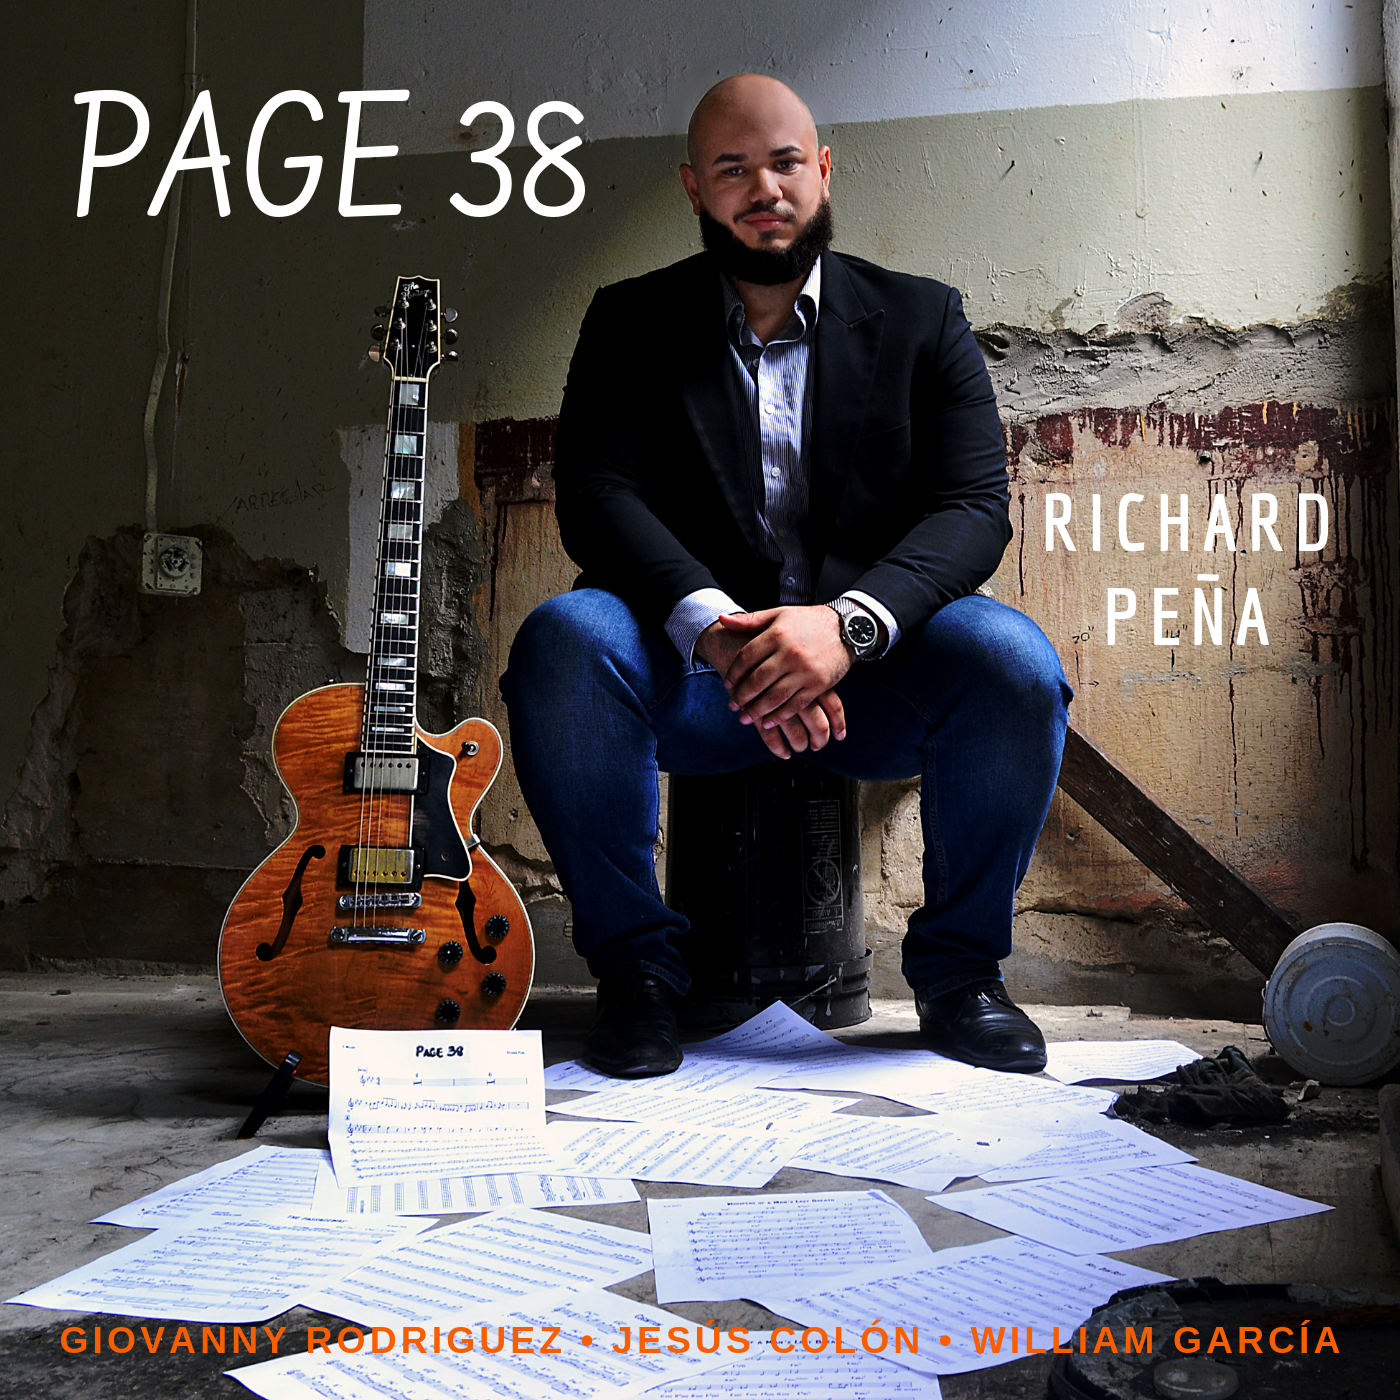 Page 38 (Single) - Based off of Syncopation for the Modern Drummer's lesson in Page 38, This tune explores a fusion of Puerto Rican Plena in the modern context of post bop/fusion. Written in Dedication of David Rivera, one of Peña's mentors.